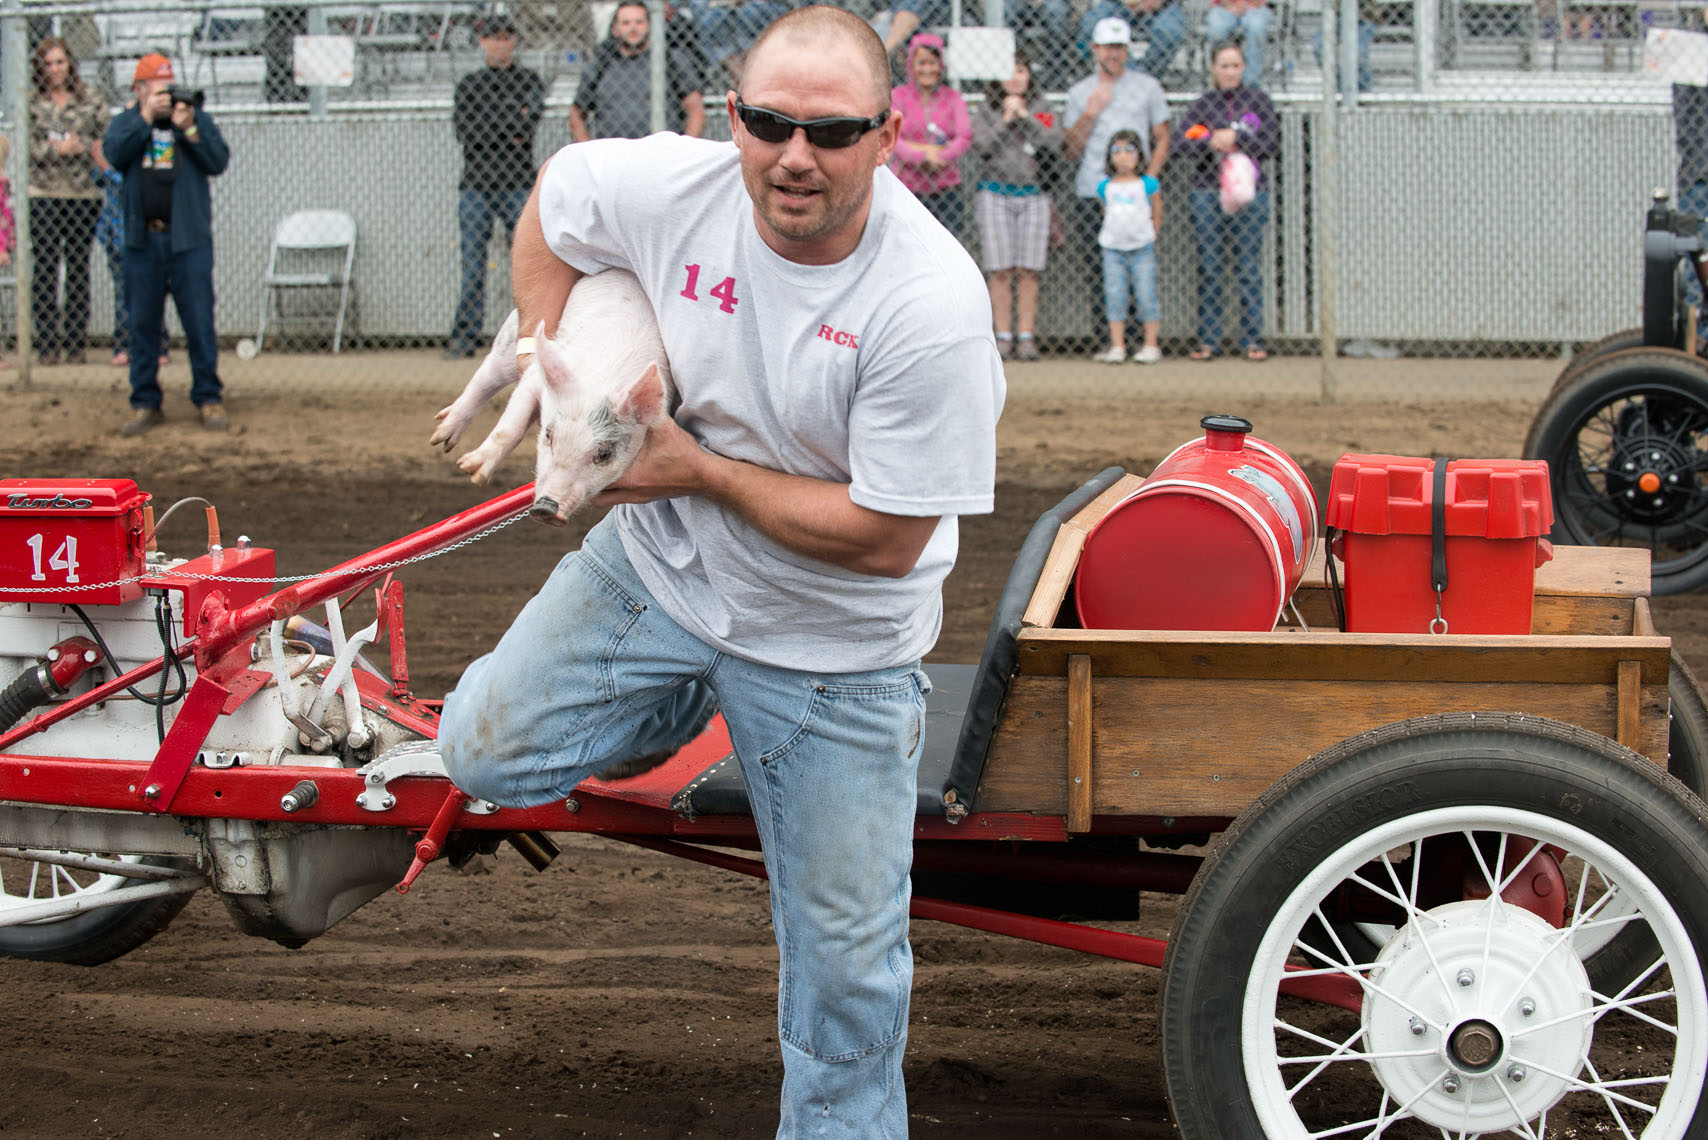 Pig and Ford Races, William Bragg, editorial photographer, Portland, Oregon